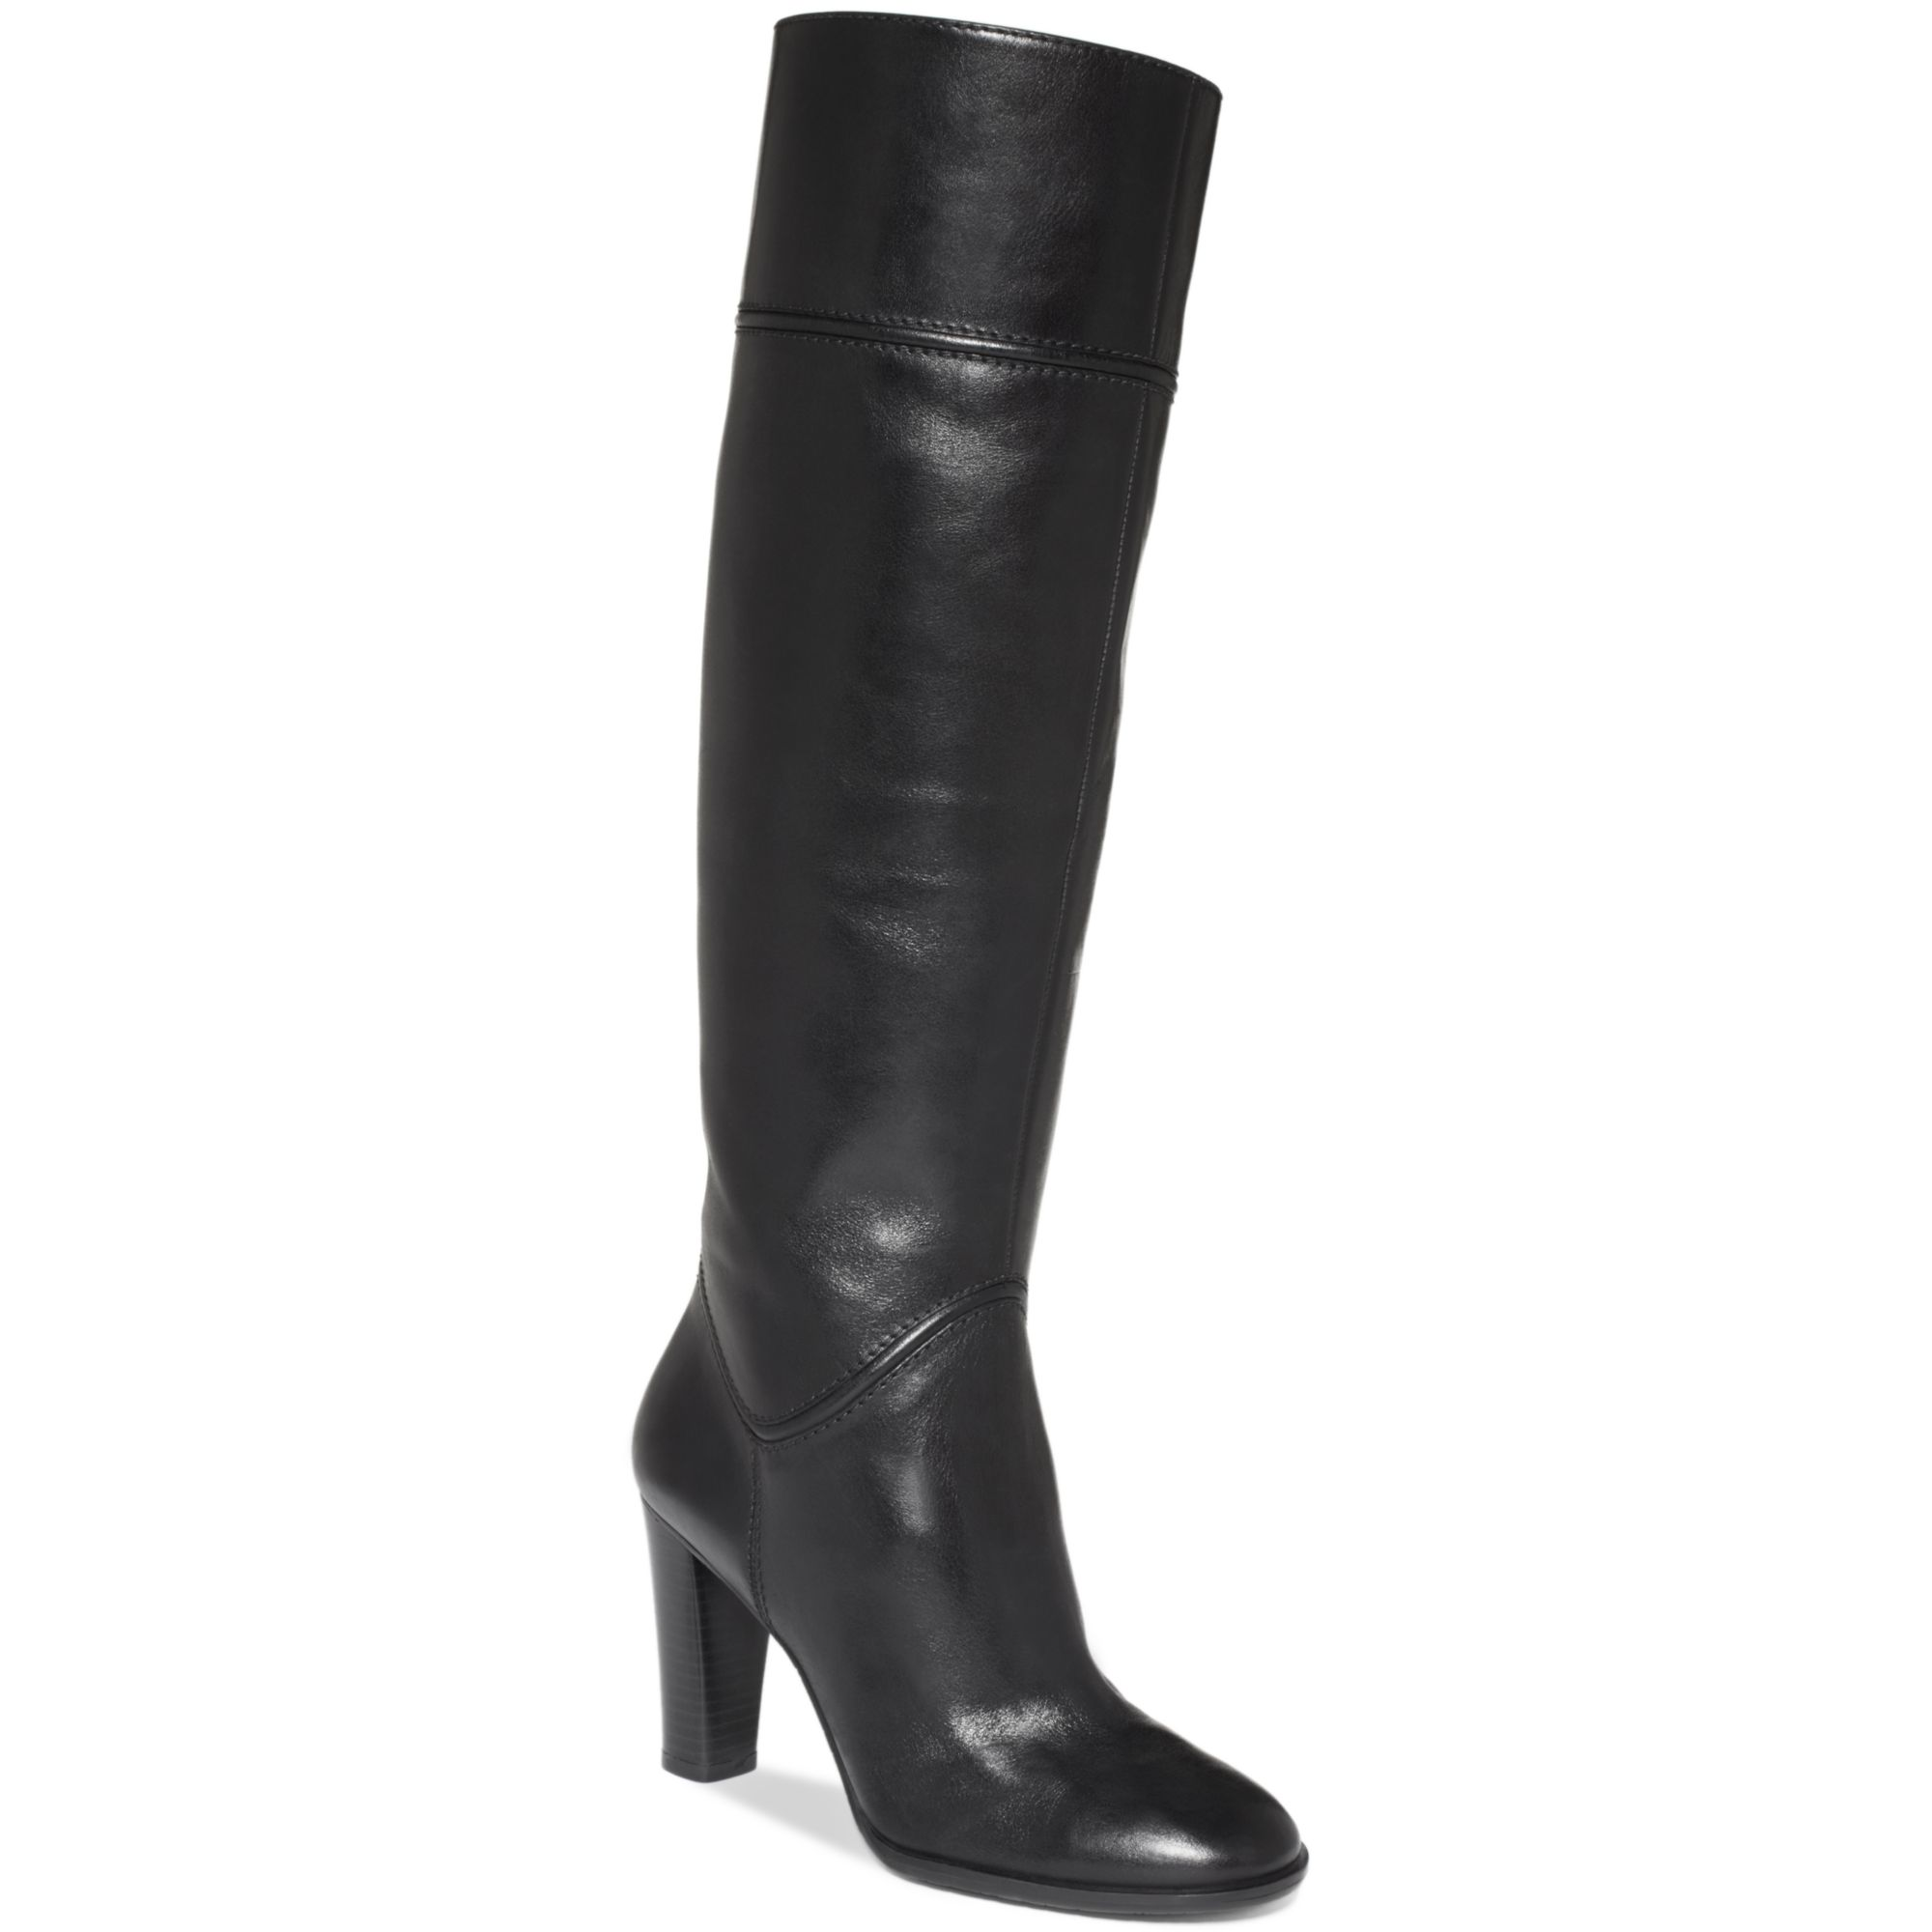 Enzo angiolini Sabyl Dress Boots in Black